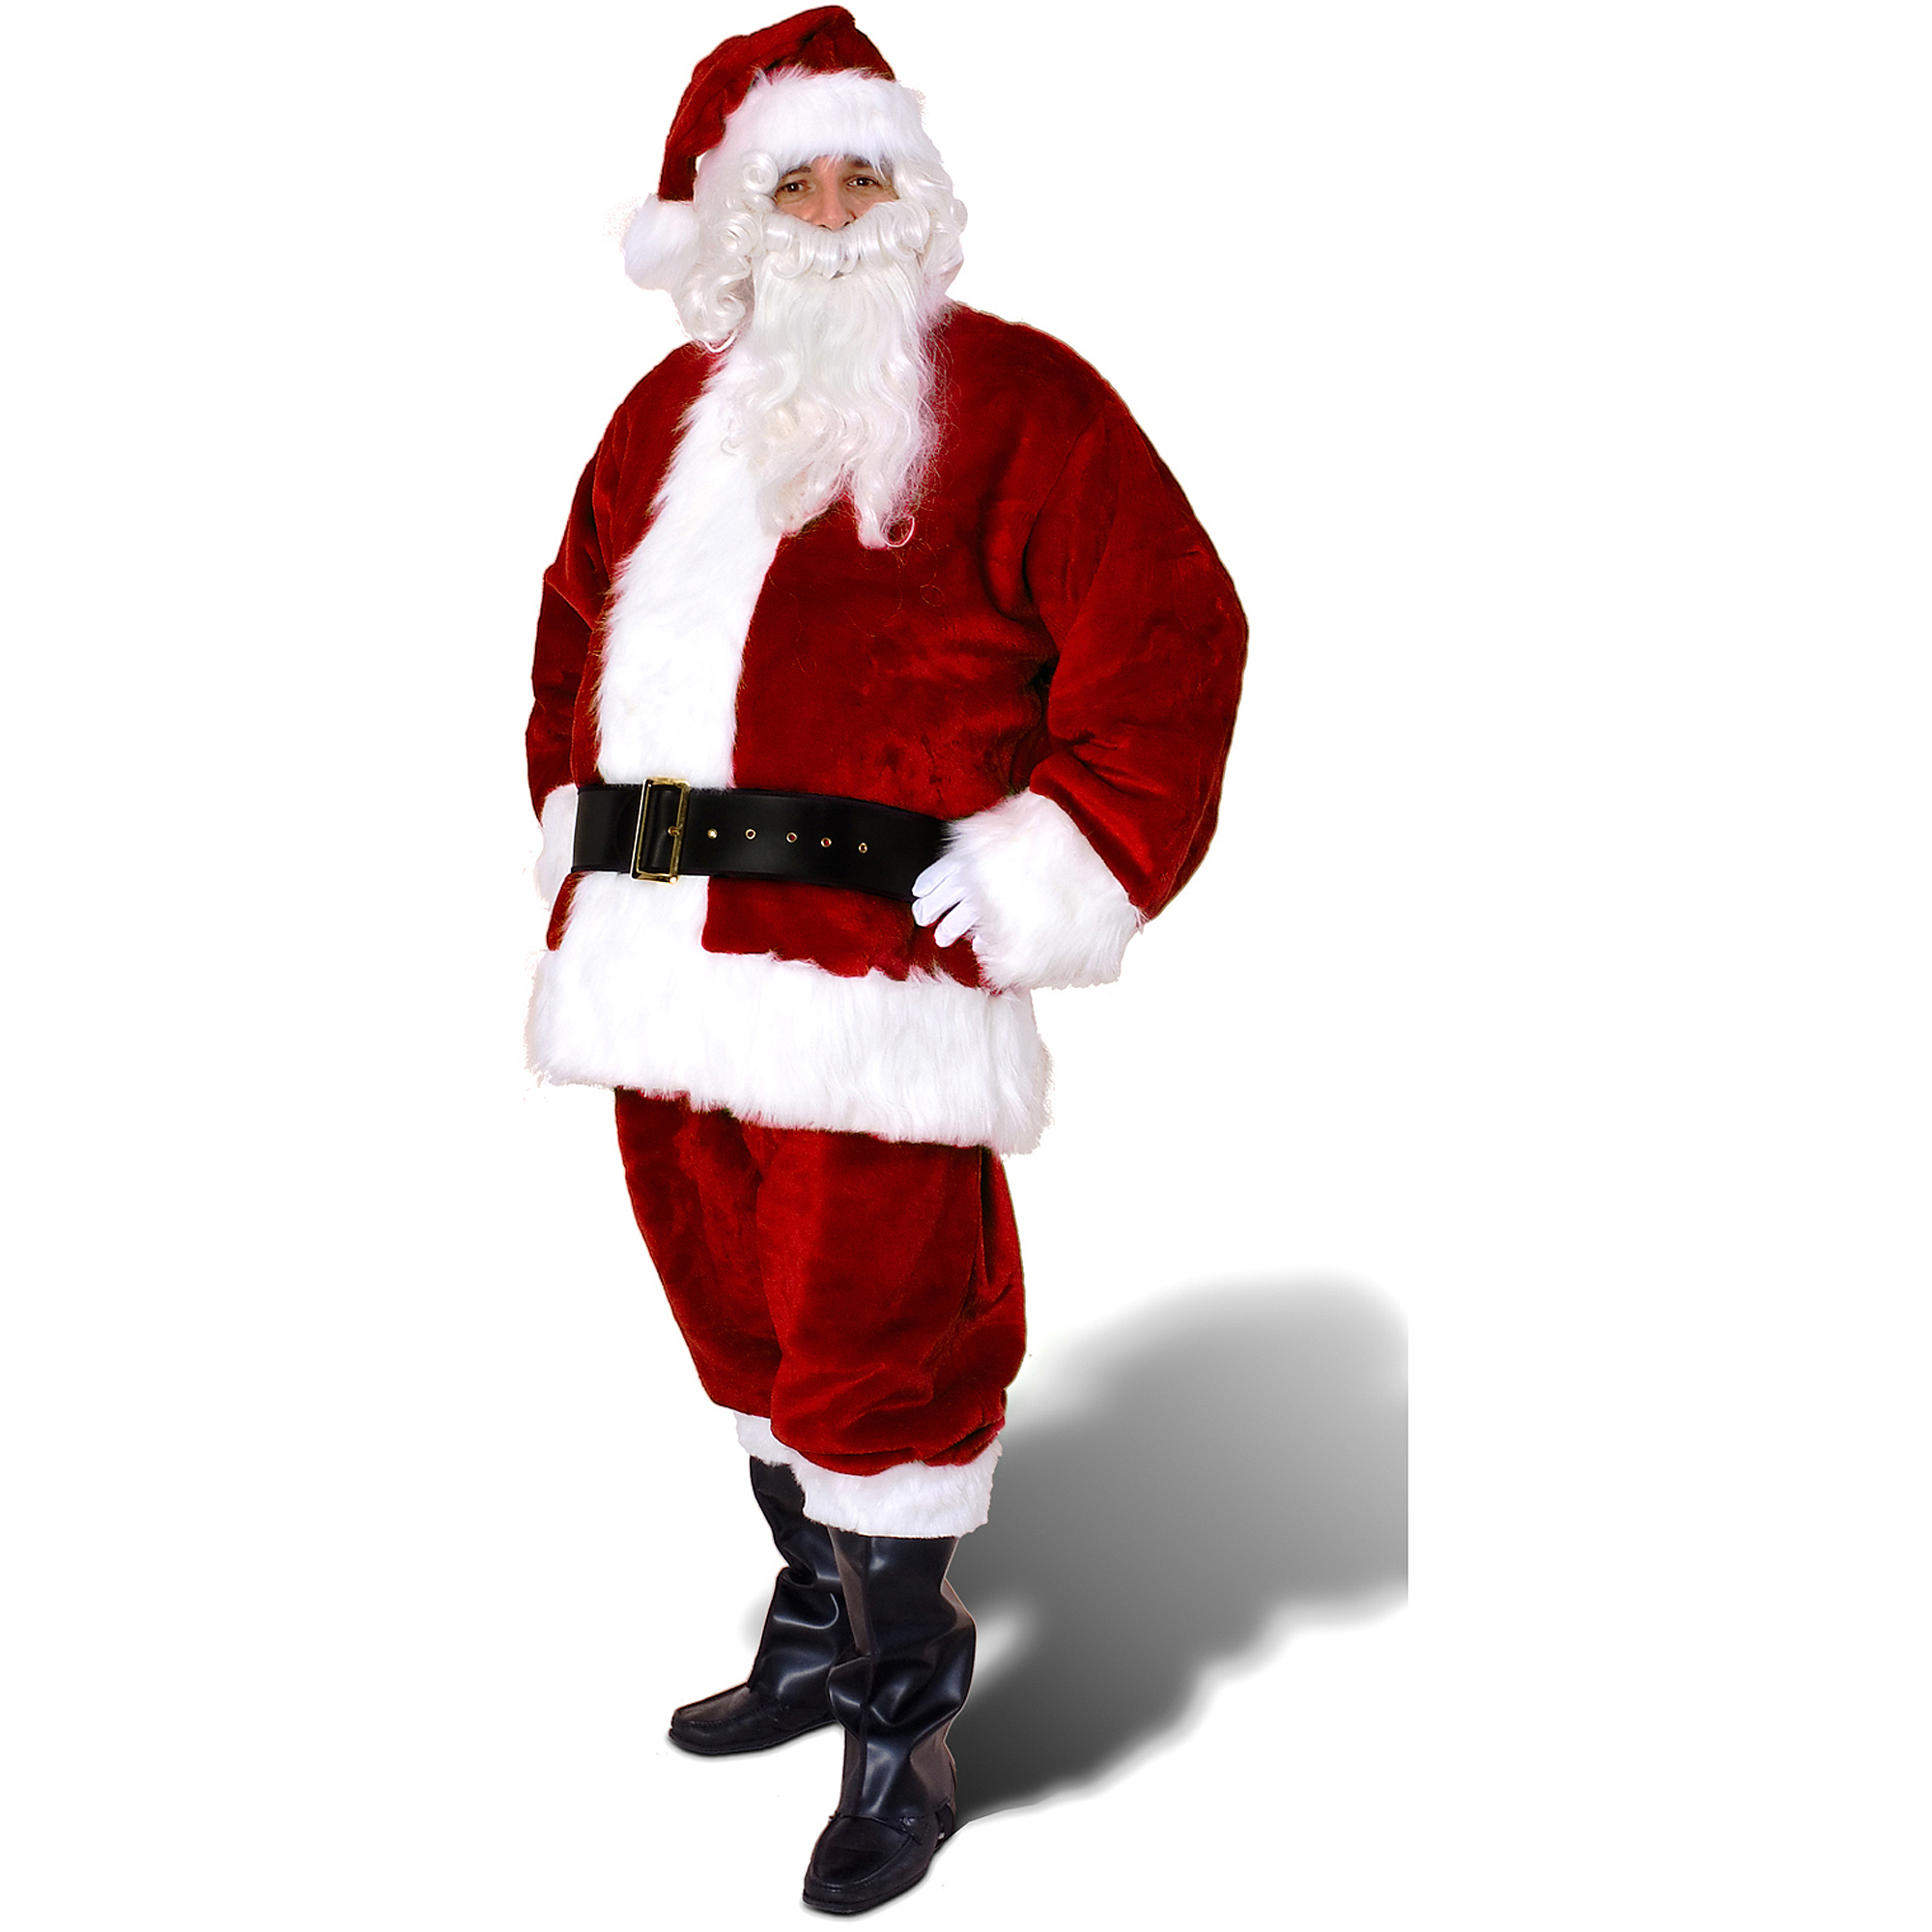 Sunnywood Premium Santa Claus Suit Adult Costume